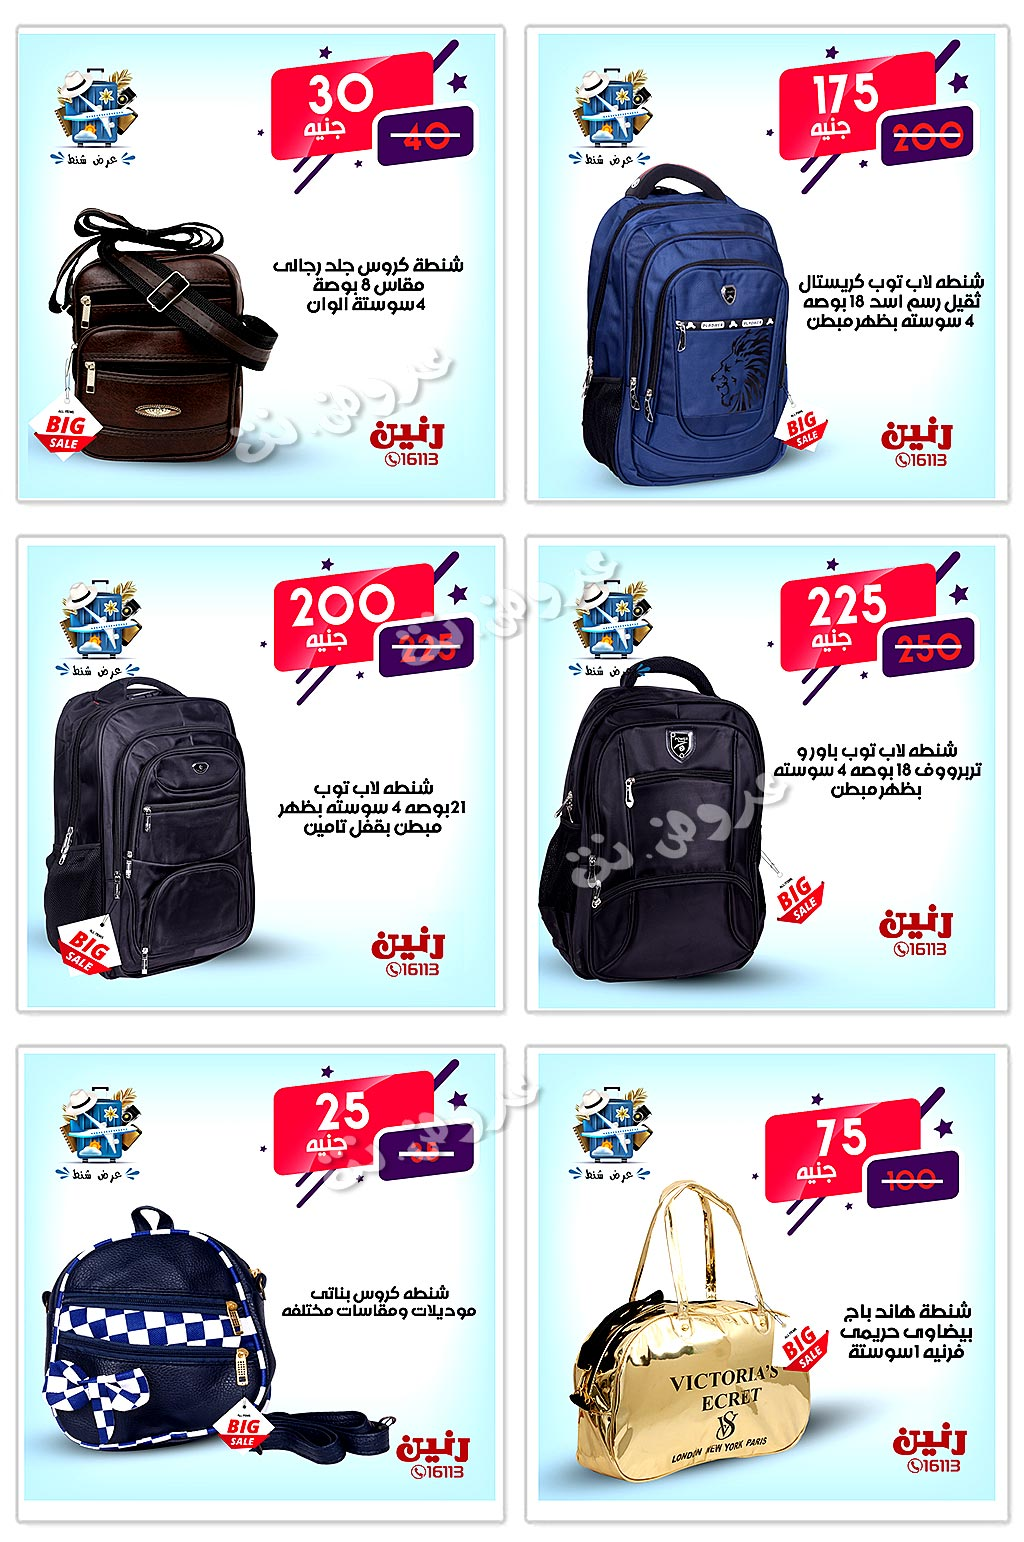 raneen offers from 28july to 29july 2020 page number 31 عروض رنين من 28 يوليو حتى 29 يوليو 2020 صفحة رقم 31